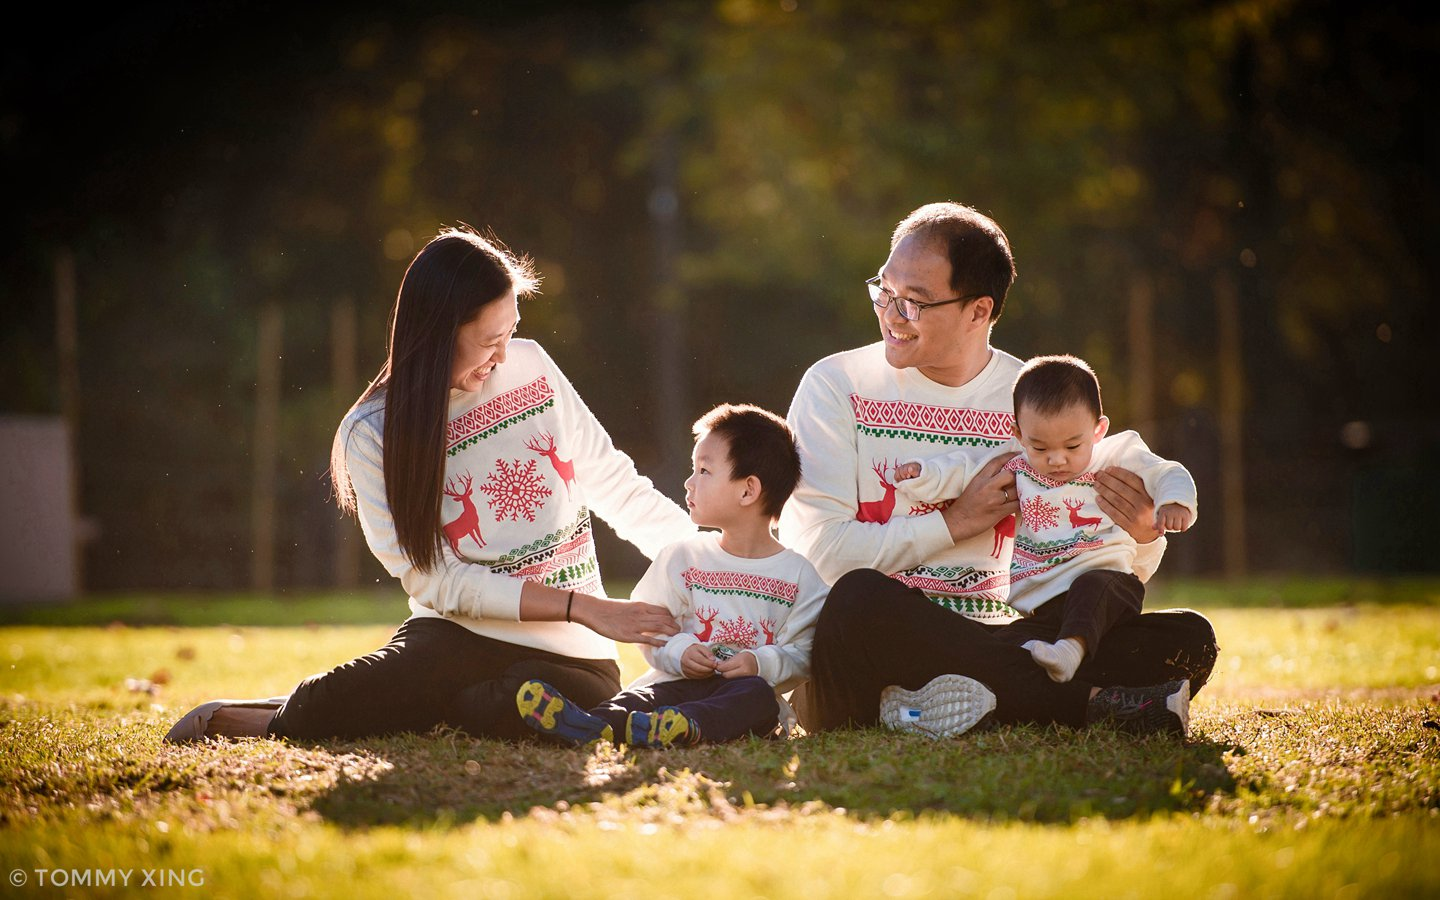 Los Angeles Family Portrait Photographer 洛杉矶家庭摄影师 Tommy Xing  02.jpg